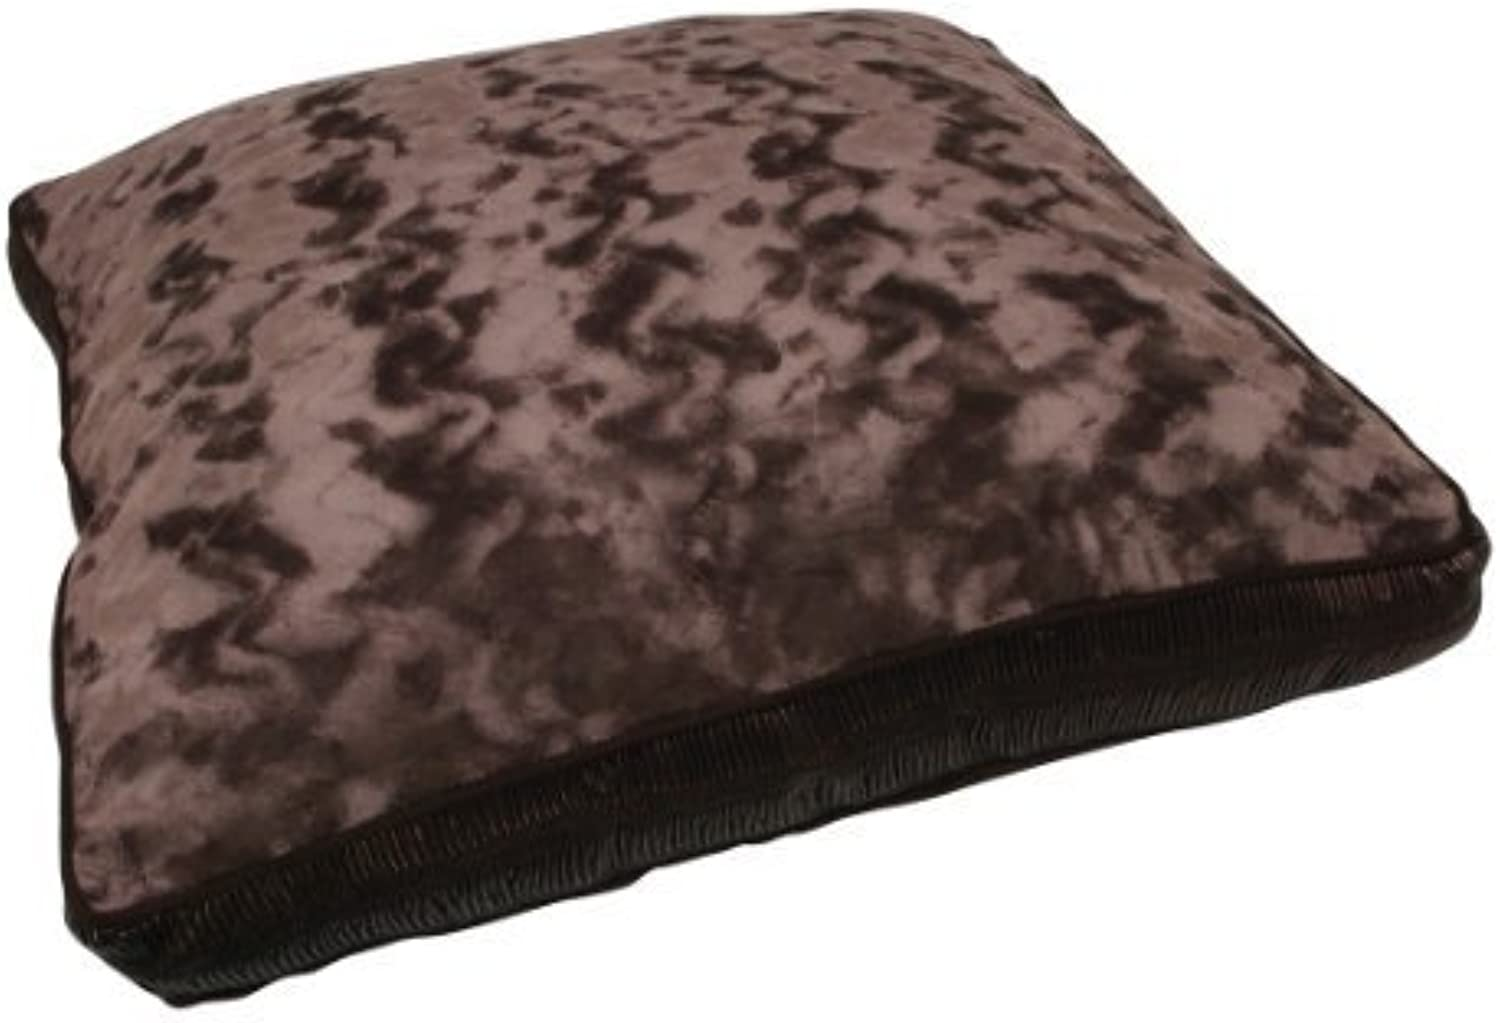 Dogit Style Elastic Small Mattress Bed, Brown by Dogit